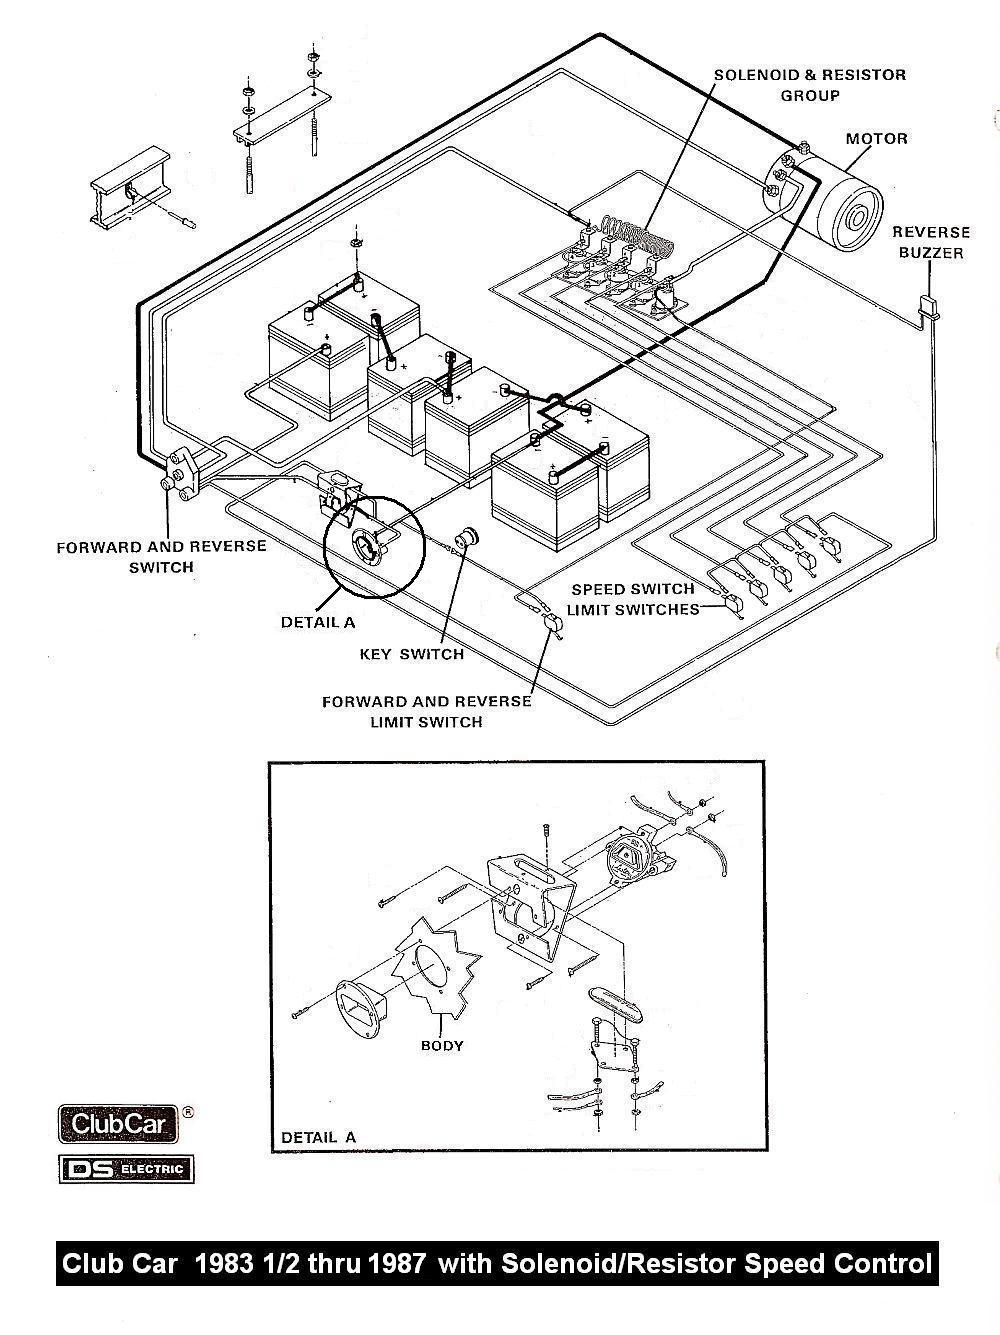 Wiring Diagram For 1987 Club Car Golf Cart - Wiring Diagram Data Oreo - Club Car Wiring Diagram 36 Volt